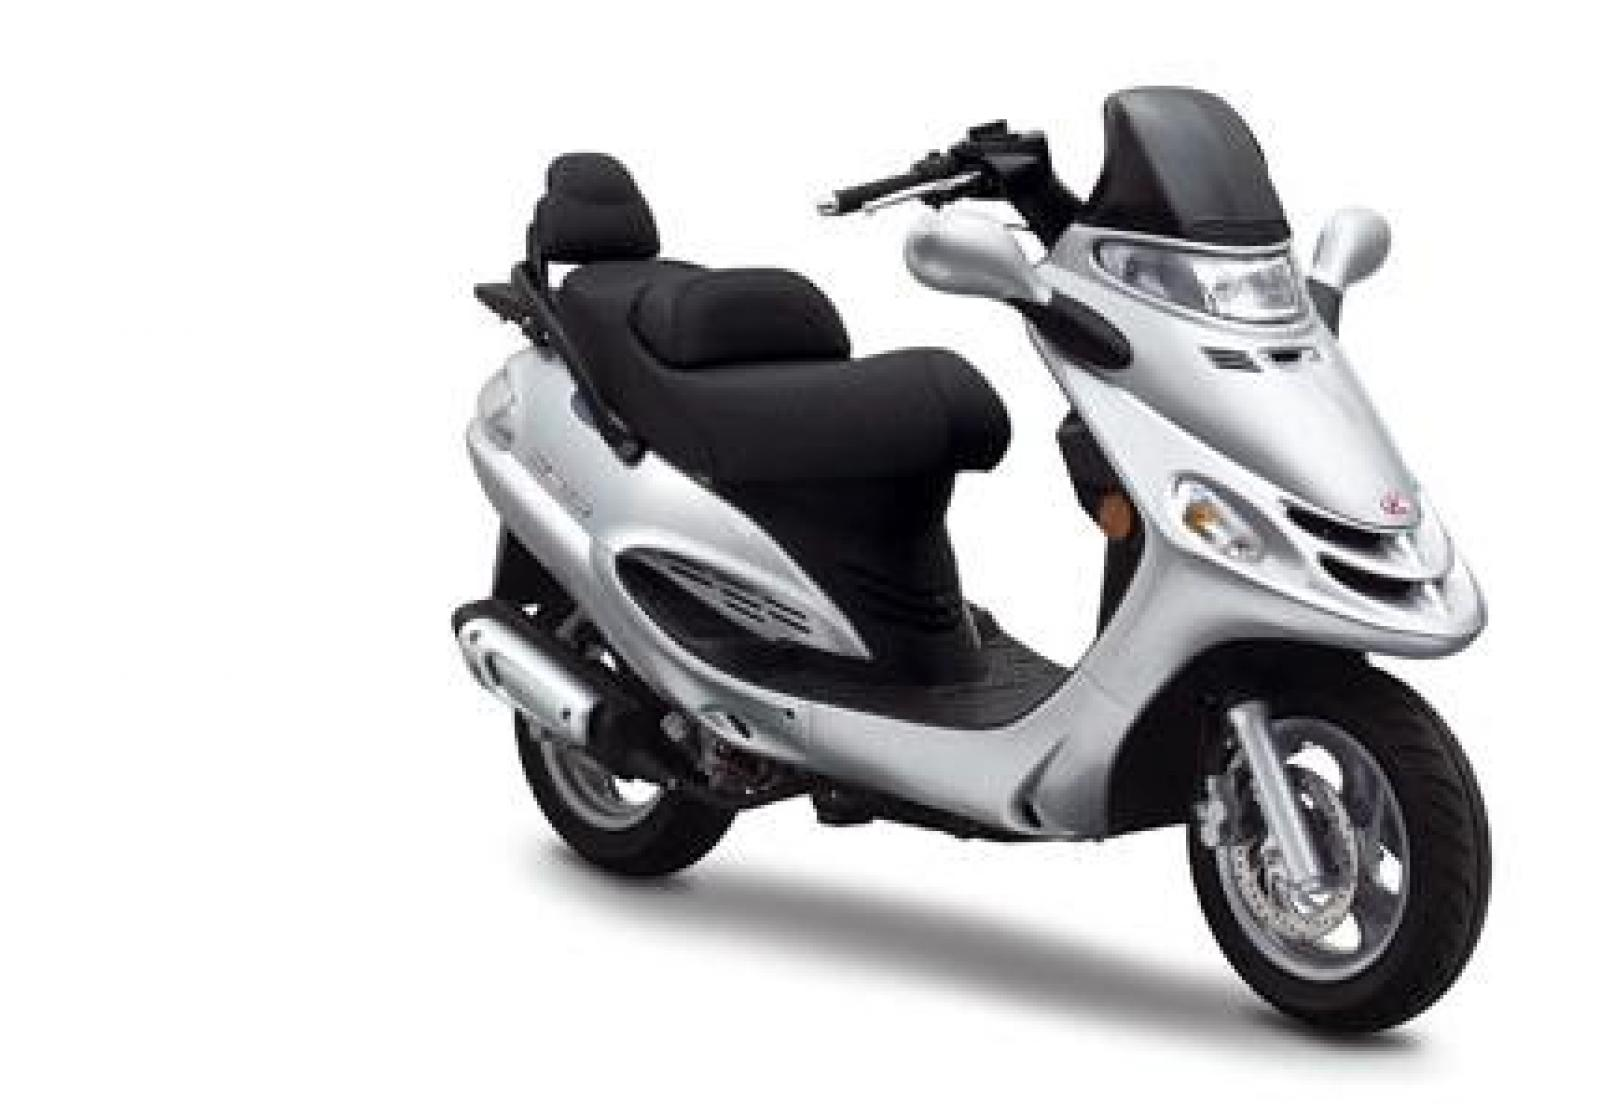 Kymco dink photo - 5